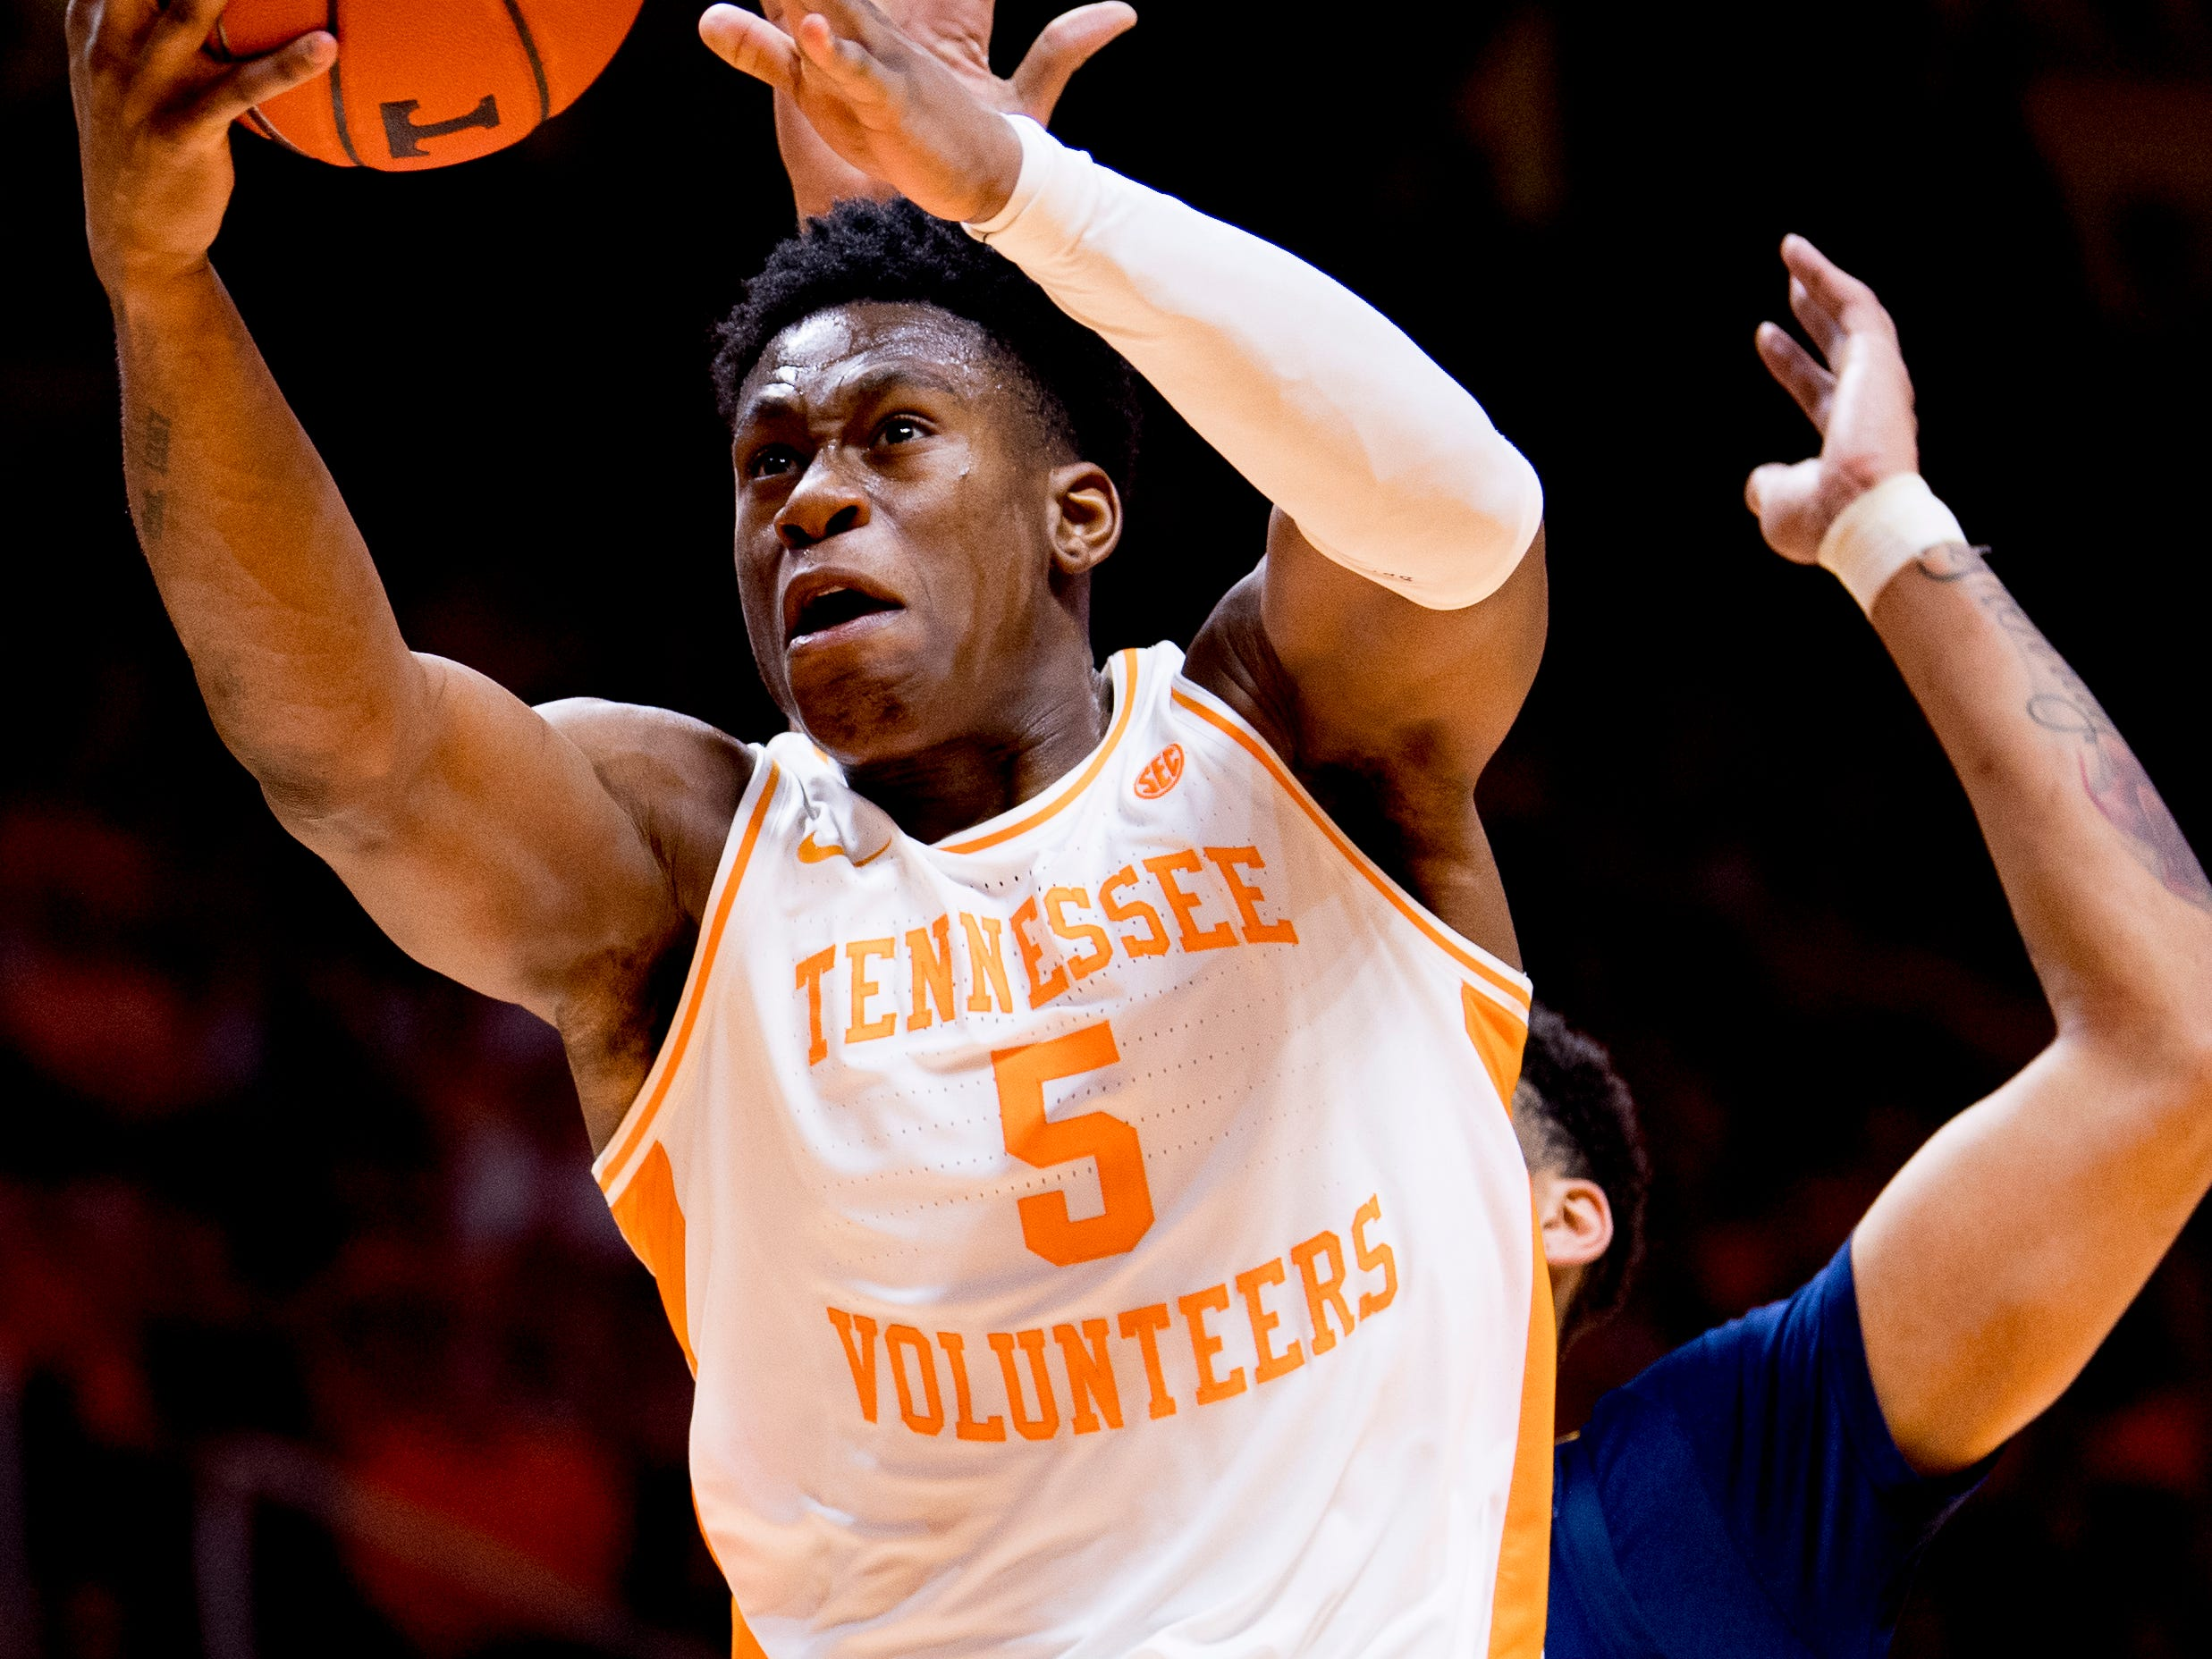 Tennessee guard Admiral Schofield (5) goes for a point during a SEC/Big 12 Challenge game between Tennessee and West Virginia at Thompson-Boling Arena in Knoxville, Tennessee on Saturday, January 26, 2019.